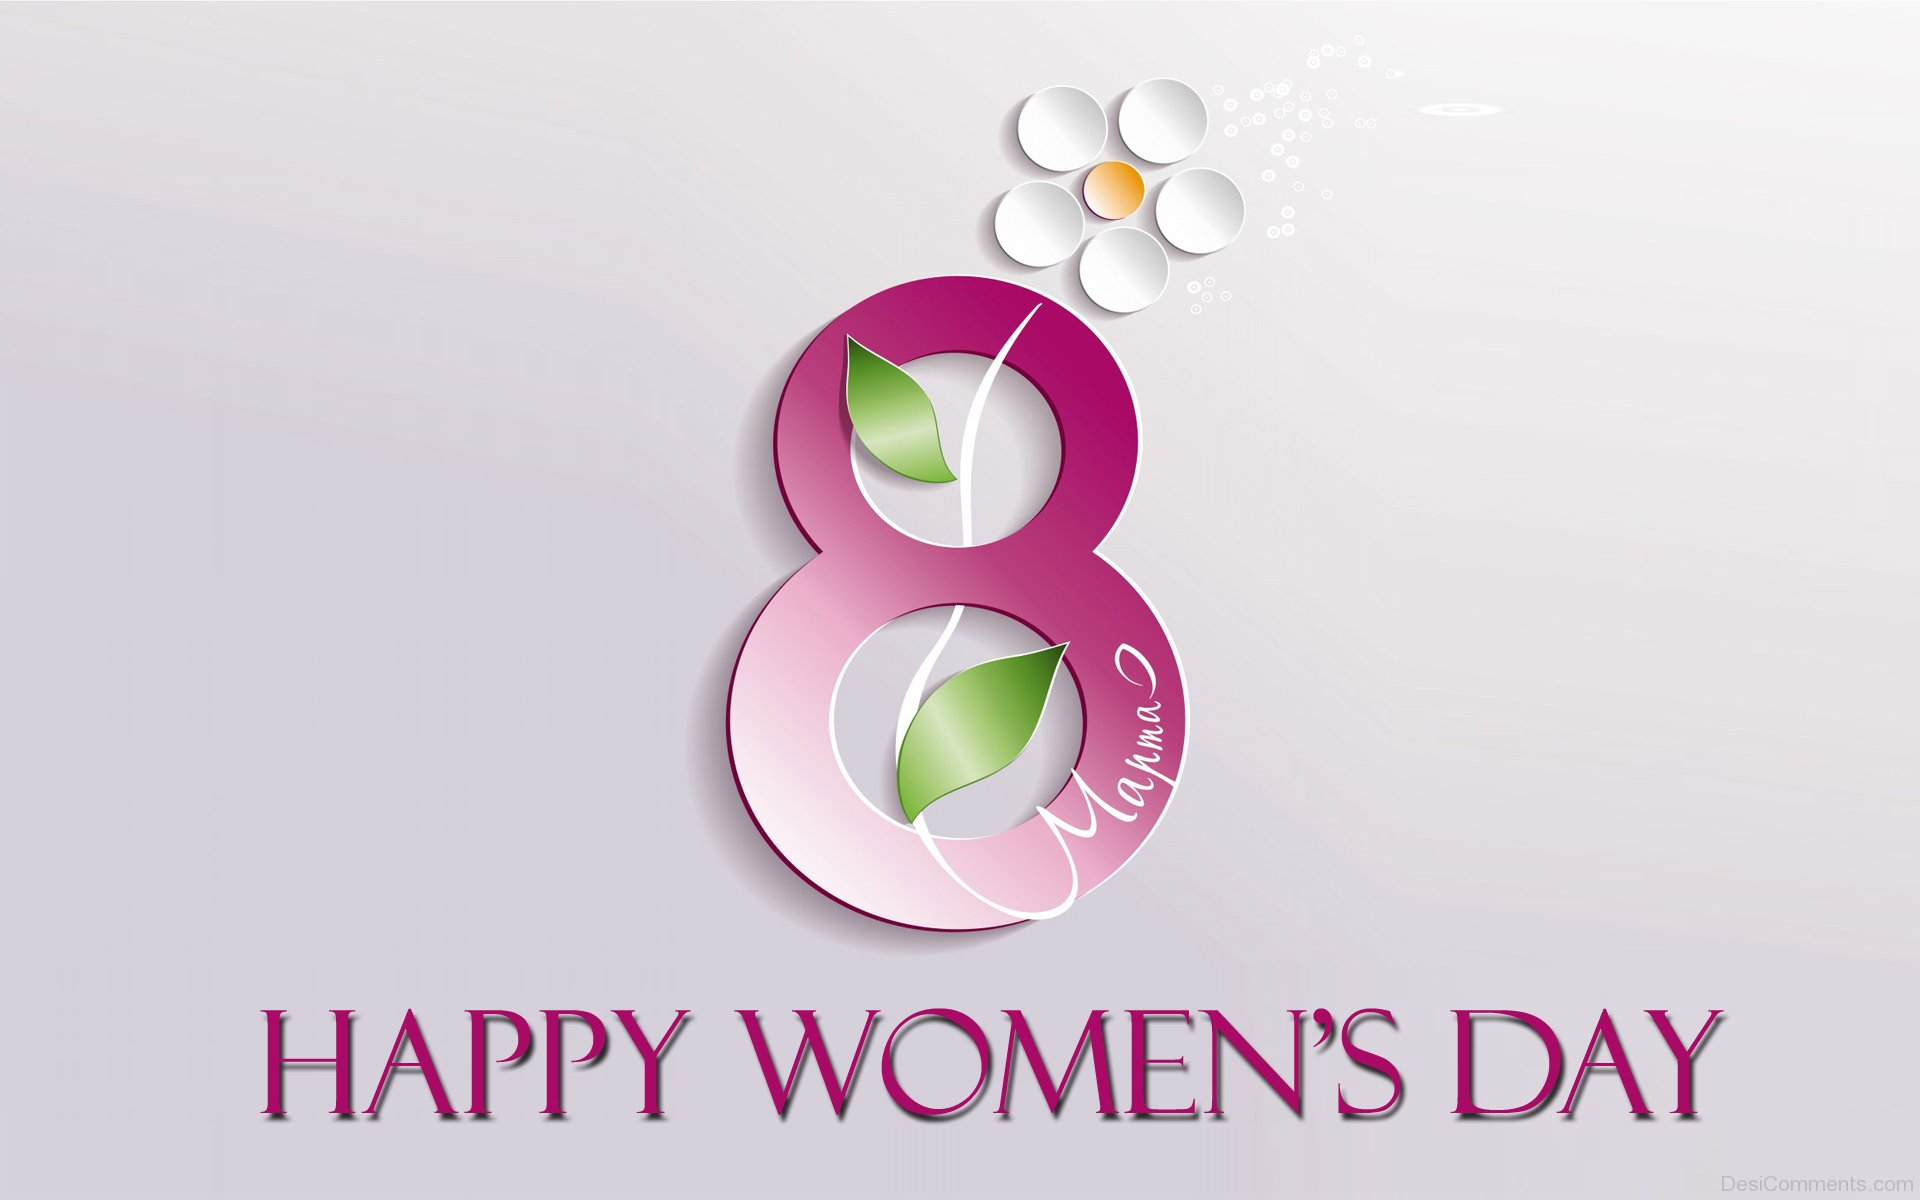 Happy Women's Day 2017 HD Image free download